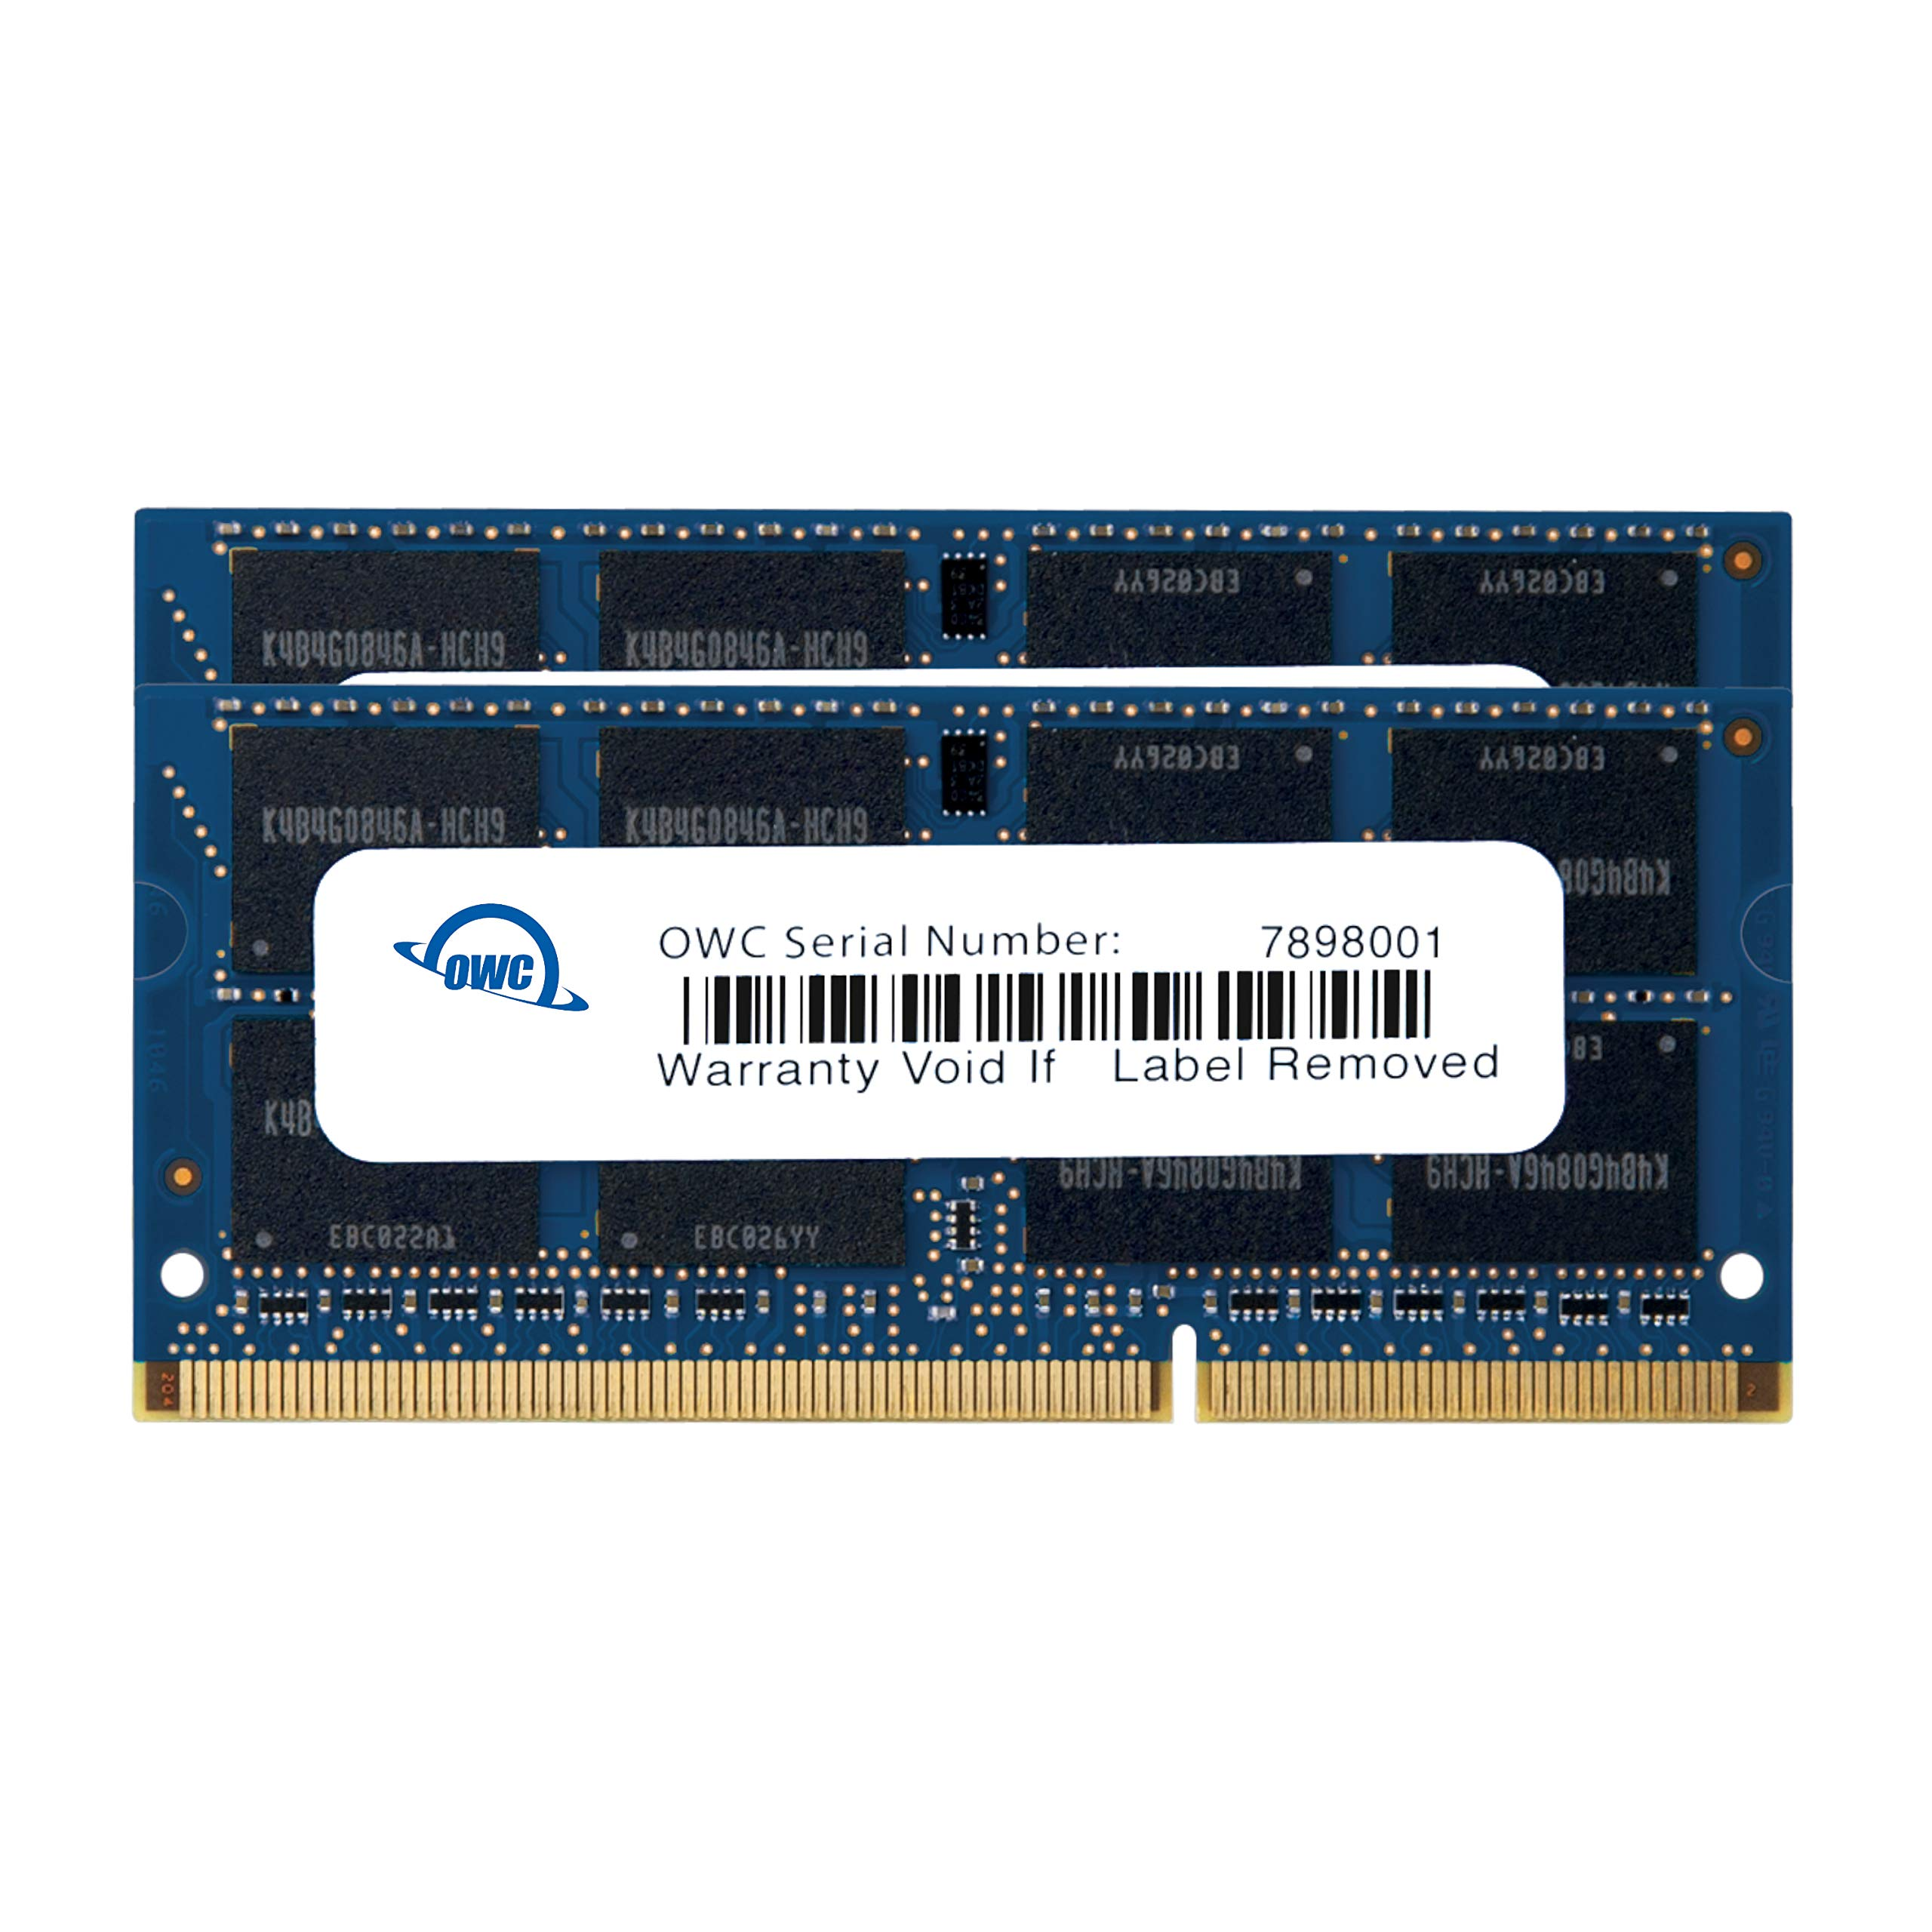 Memoria Ram 8gb Owc 16.0gb (2x ) Pc3-12800 Ddr3l 1600mhz So-dimm 204 Pin Cl11 So-dimm Upgrade Kit